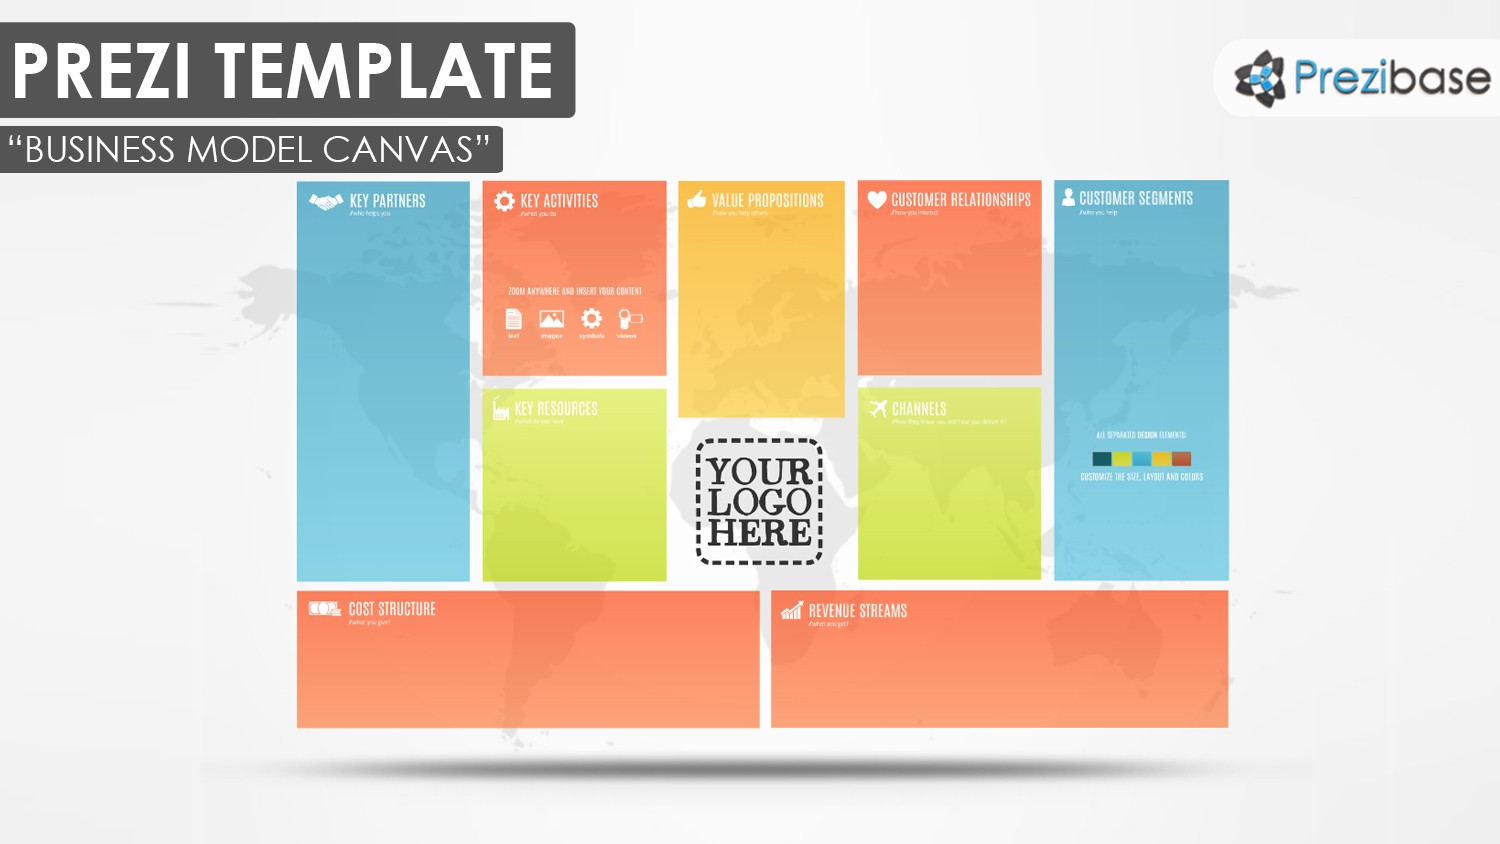 Business Model Canvas Prezi Template | Prezibase